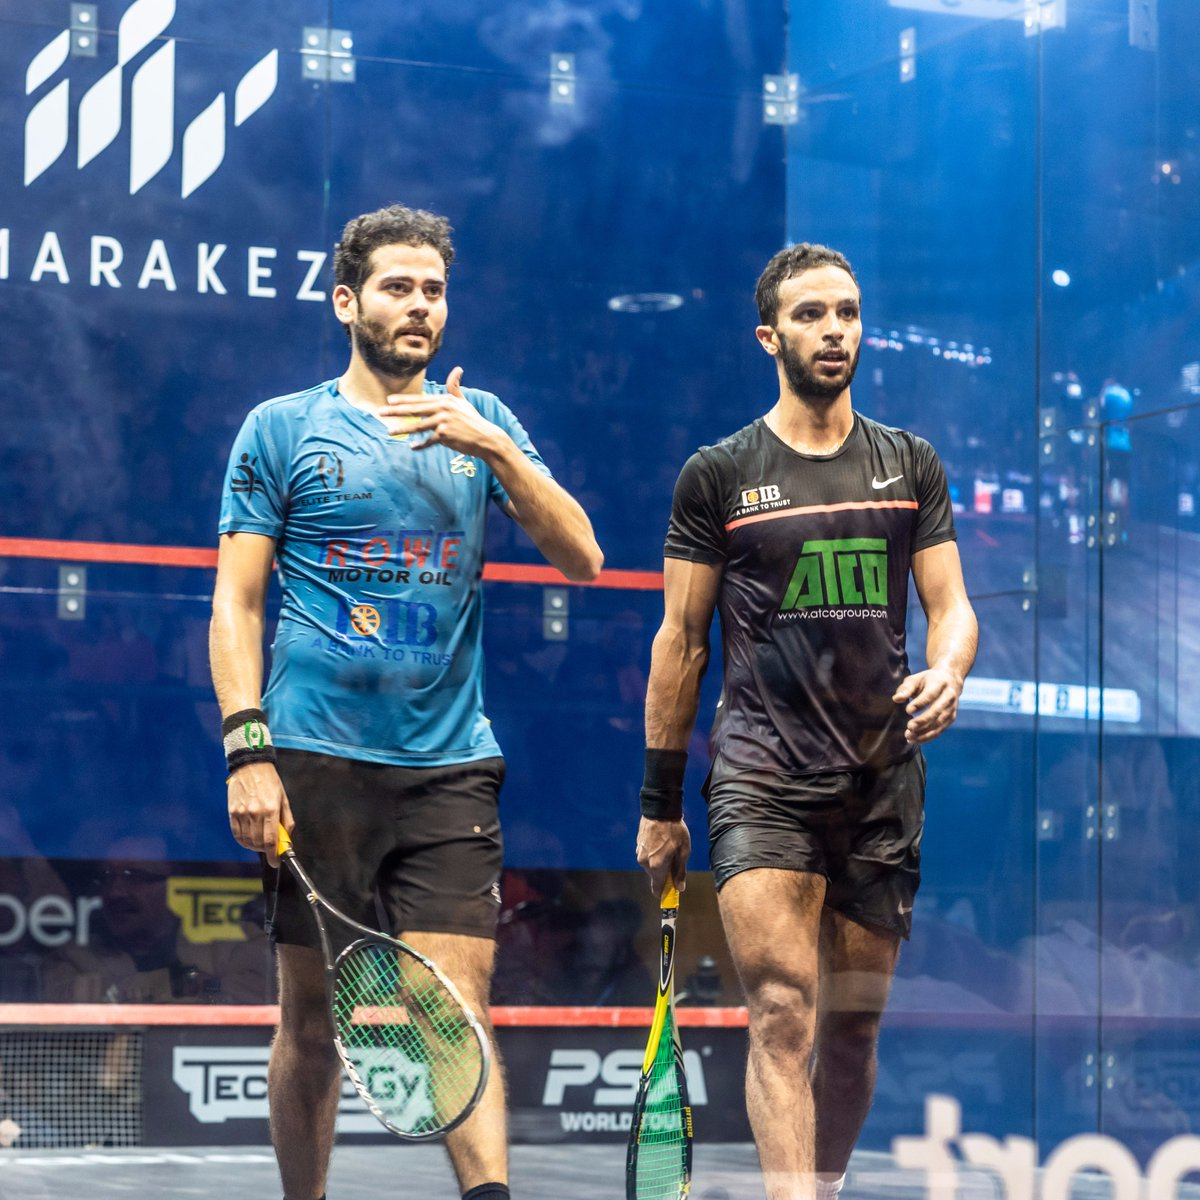 test Twitter Media - ⏪ #ThrowbackThursday   We take a look back at the story of the 2018/19 CIB PSA World Tour Finals 🤩  Relive the best moments here ⬇️ https://t.co/oMRWnLbJcb #tbt https://t.co/2LneTvgLHi